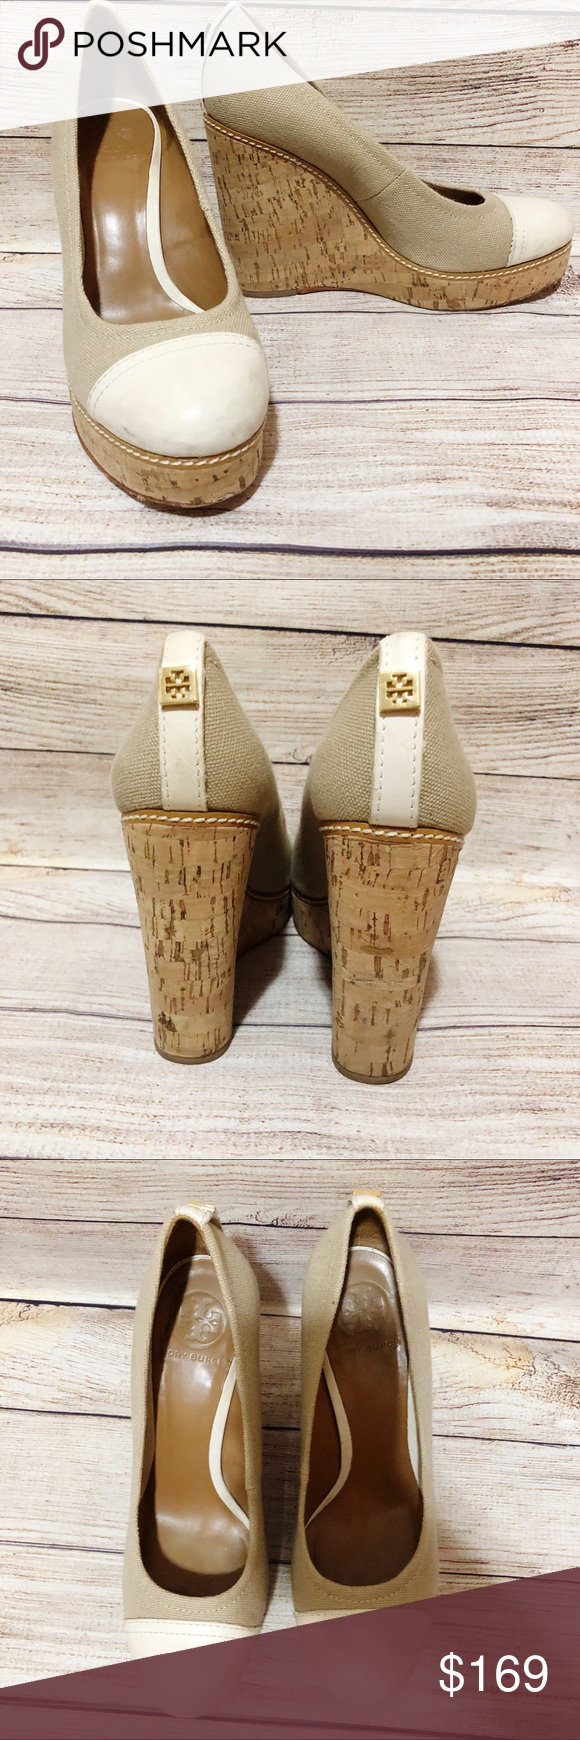 bcda9693797a Tory Burch size 8 Cork Wedges Tory Burch Size 8 Cork Wedges Cream and Tan  Well loved Gold emblem on back of heel Tory Burch Shoes Wedges